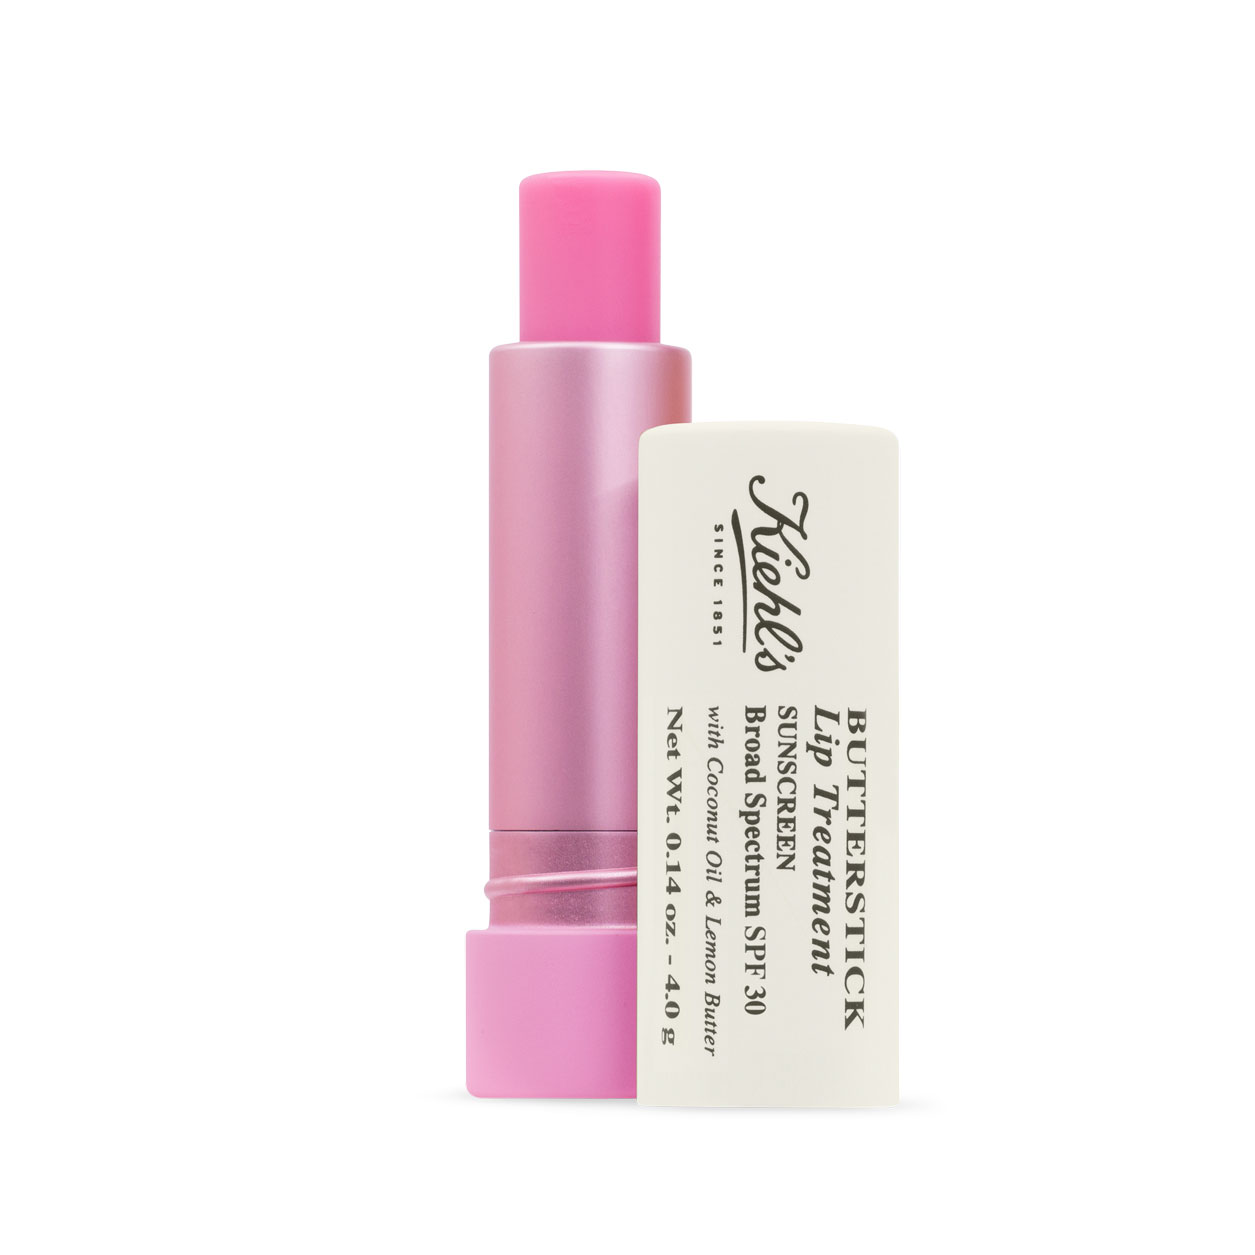 The prettiest everyday tinted lip balm